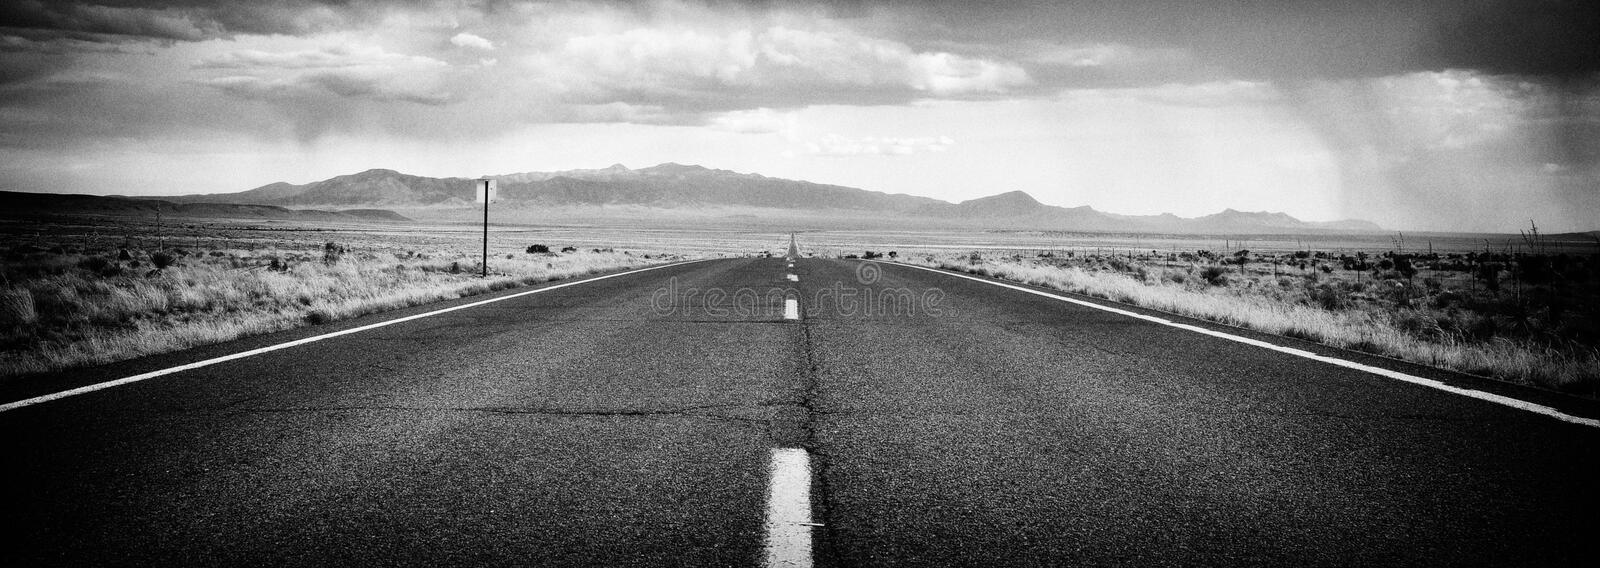 B&W Desert Road in New Mexico stock images